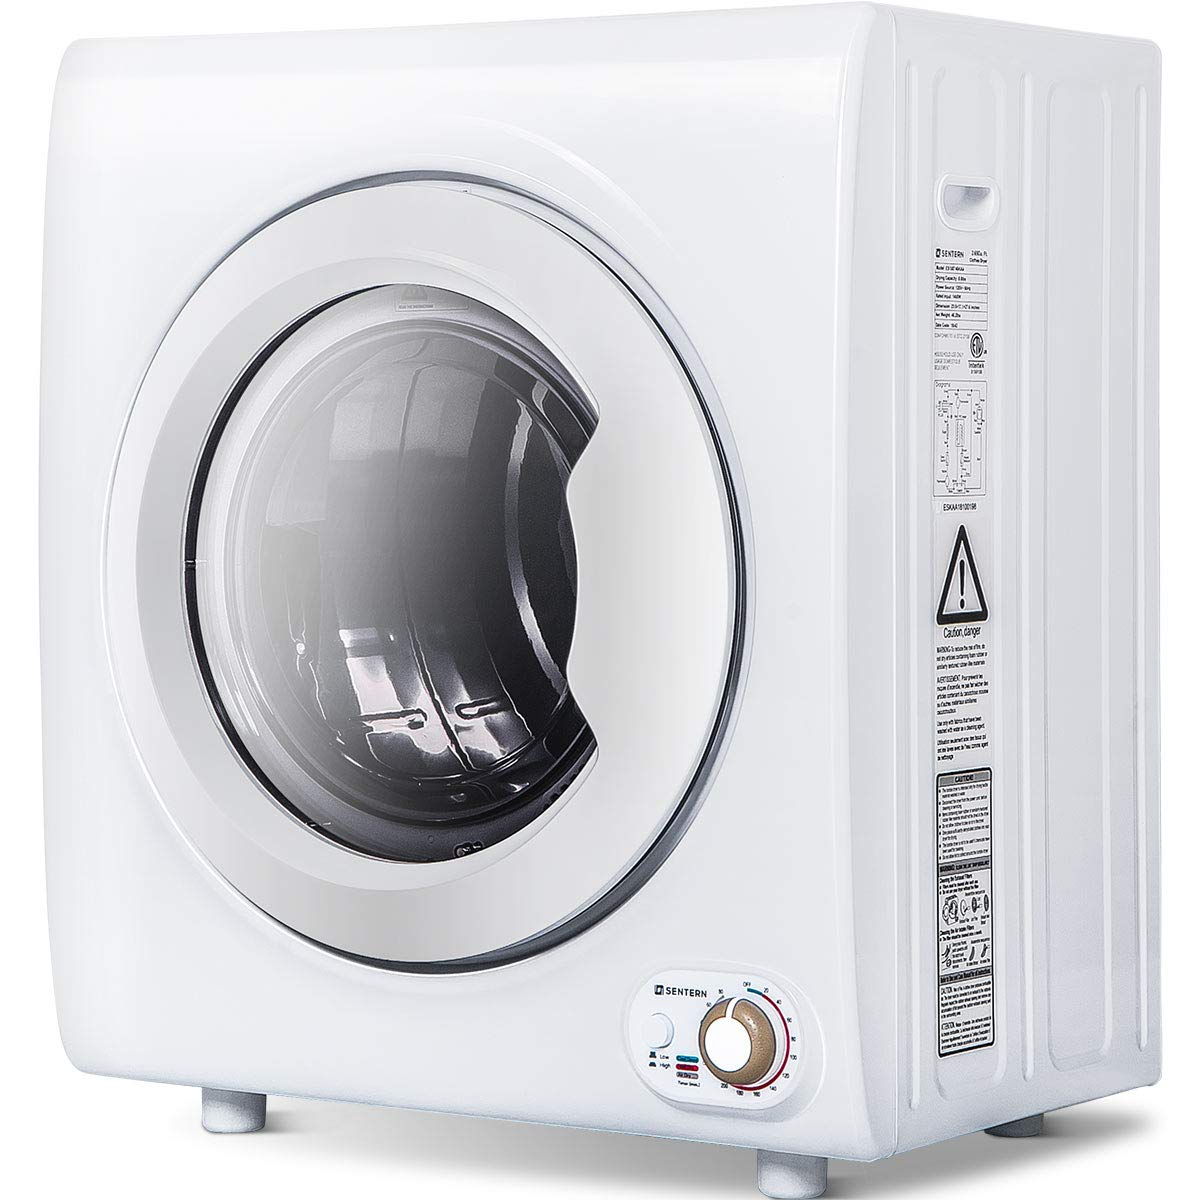 Sentern 2.65 Cu.Ft Compact Laundry Dryer - 9 LBS Capacity Portable Clothes Dryer with 1400W Drying Power (9 LBS) by Merax